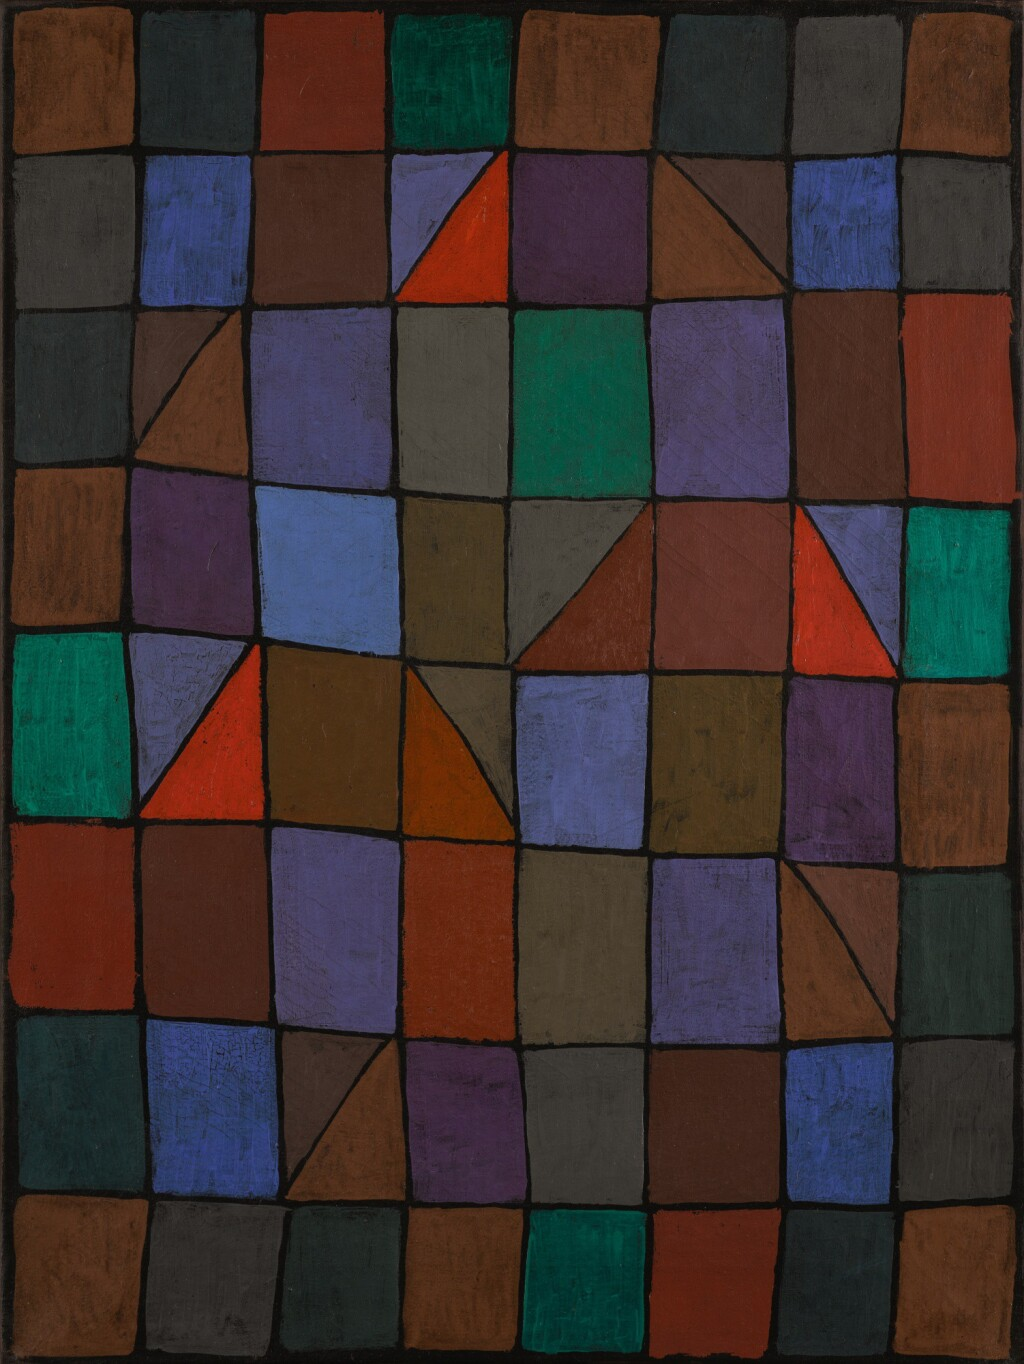 PAUL KLEE | ABEND IN N (EVENING IN N) OR ARCHITEKTUR ABENDS (ARCHITECTURE IN THE EVENING)